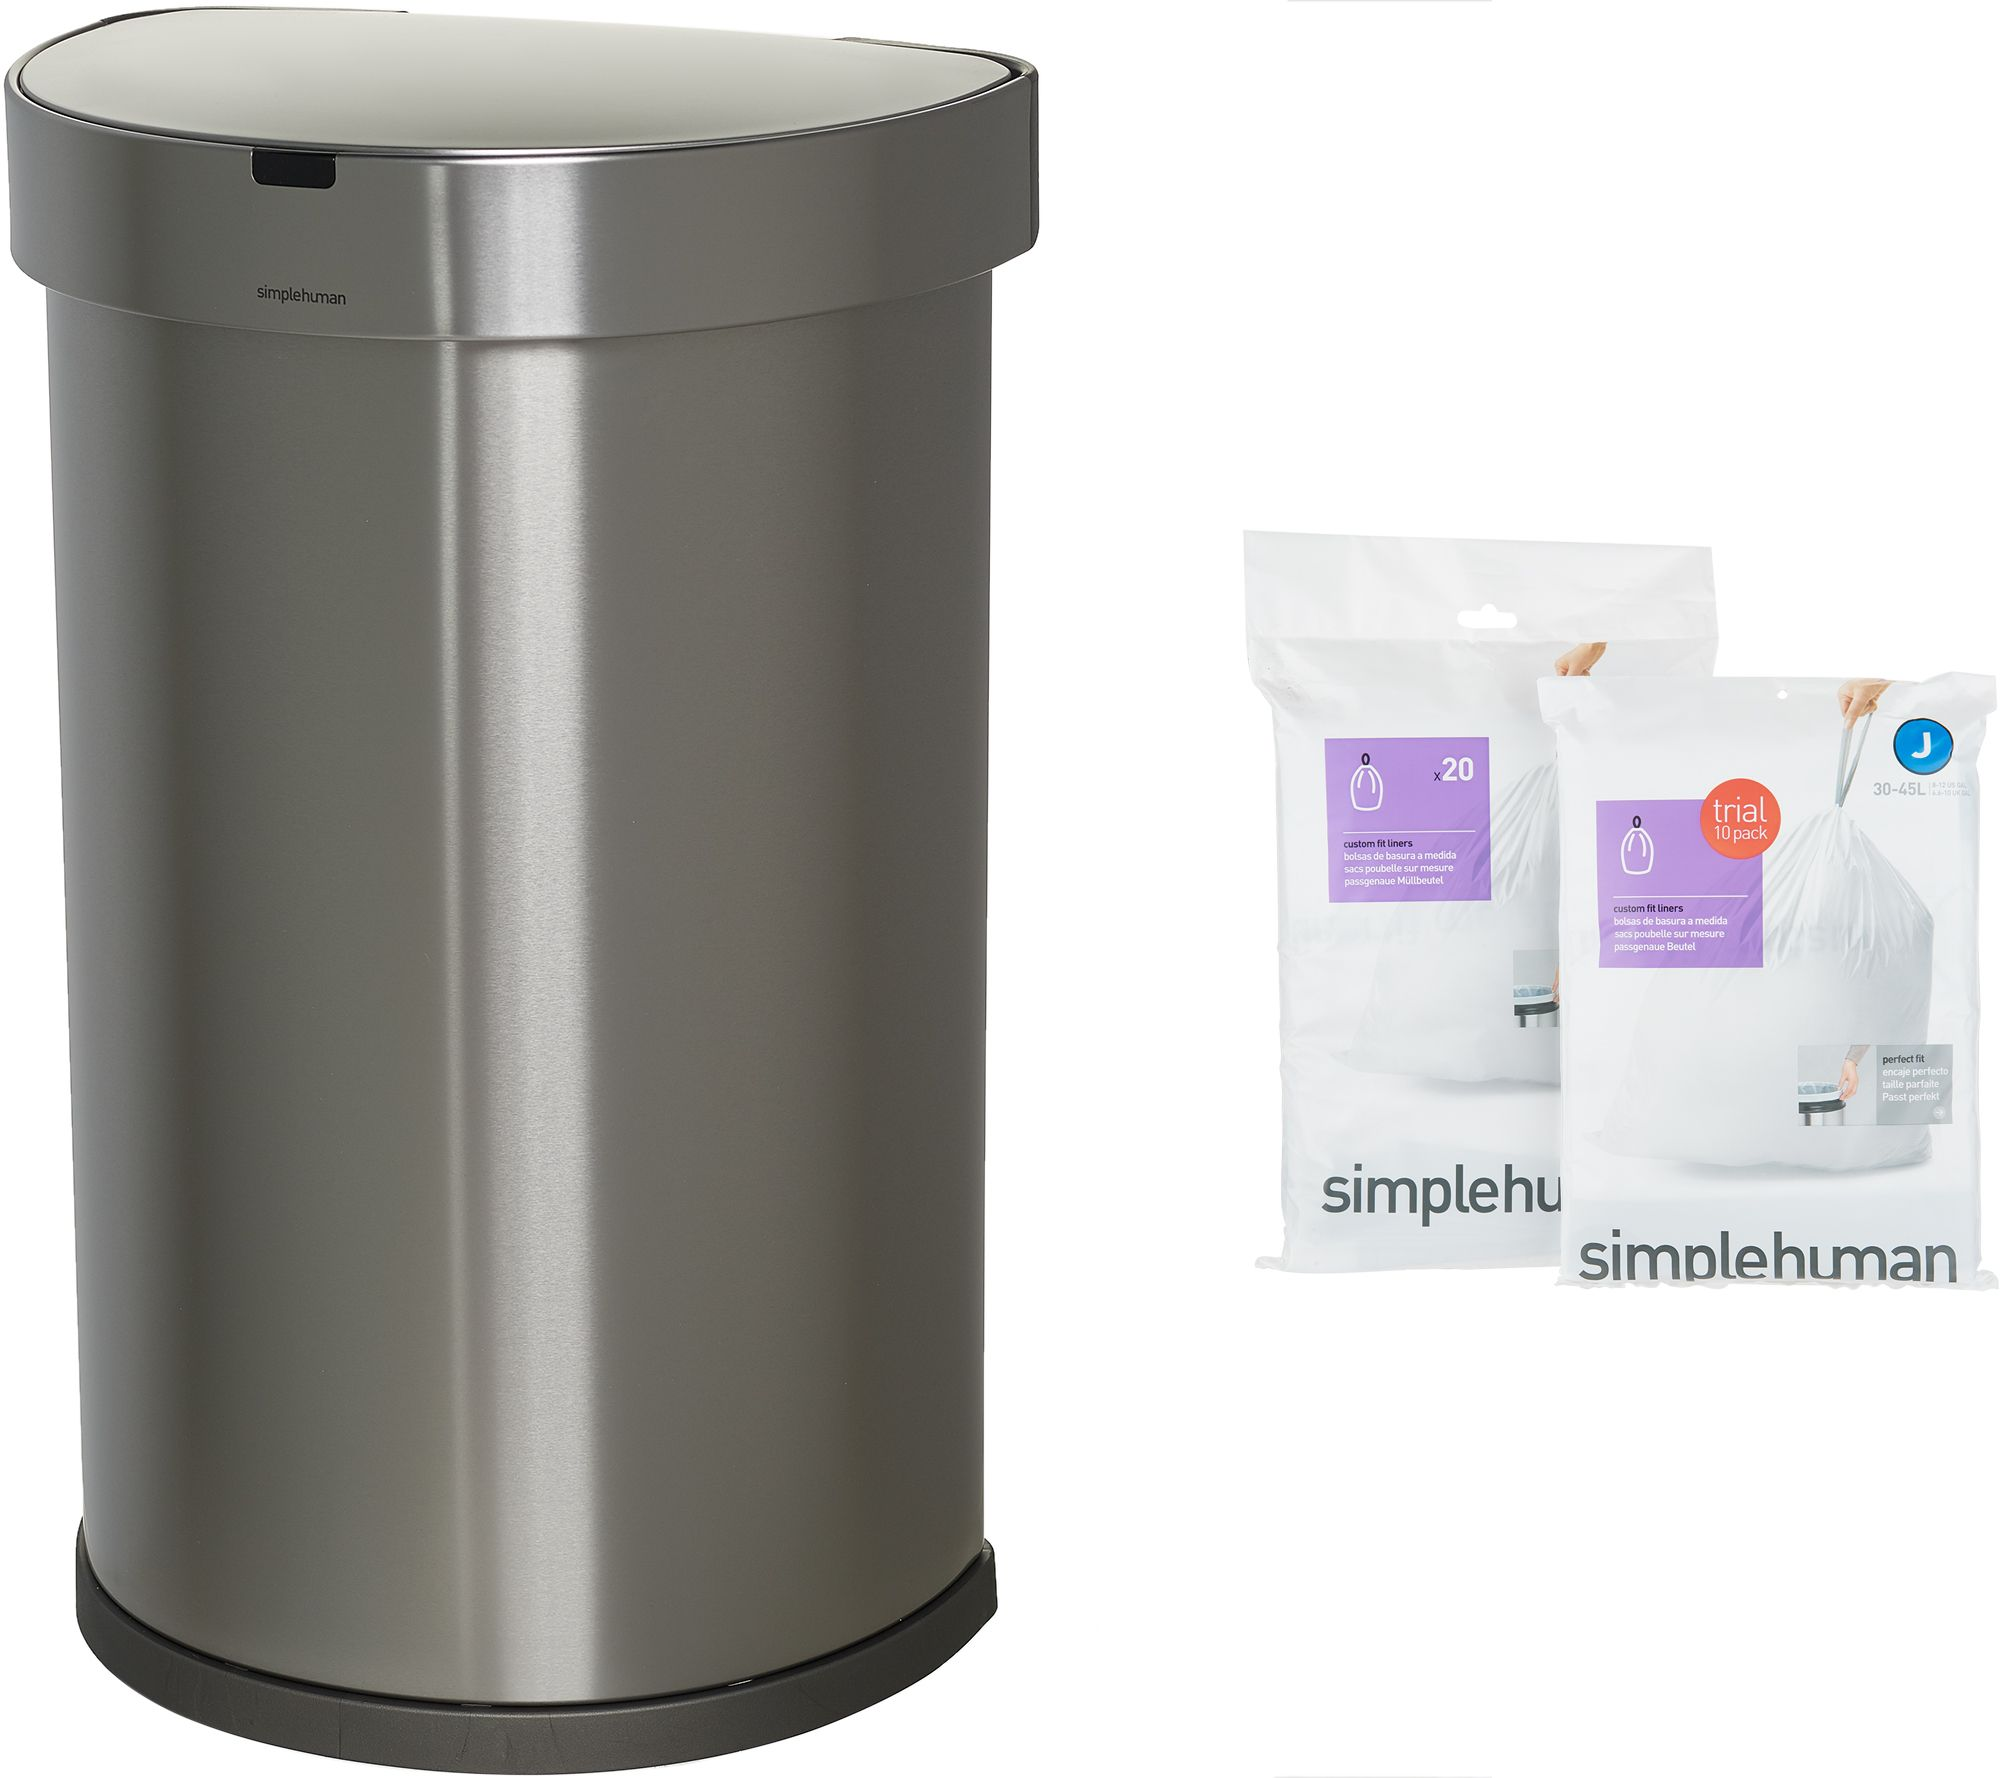 fac9a81c27a154 simplehuman 45 Liter Stainless Steel Sensor Trash Can with Liners - Page 1  — QVC.com